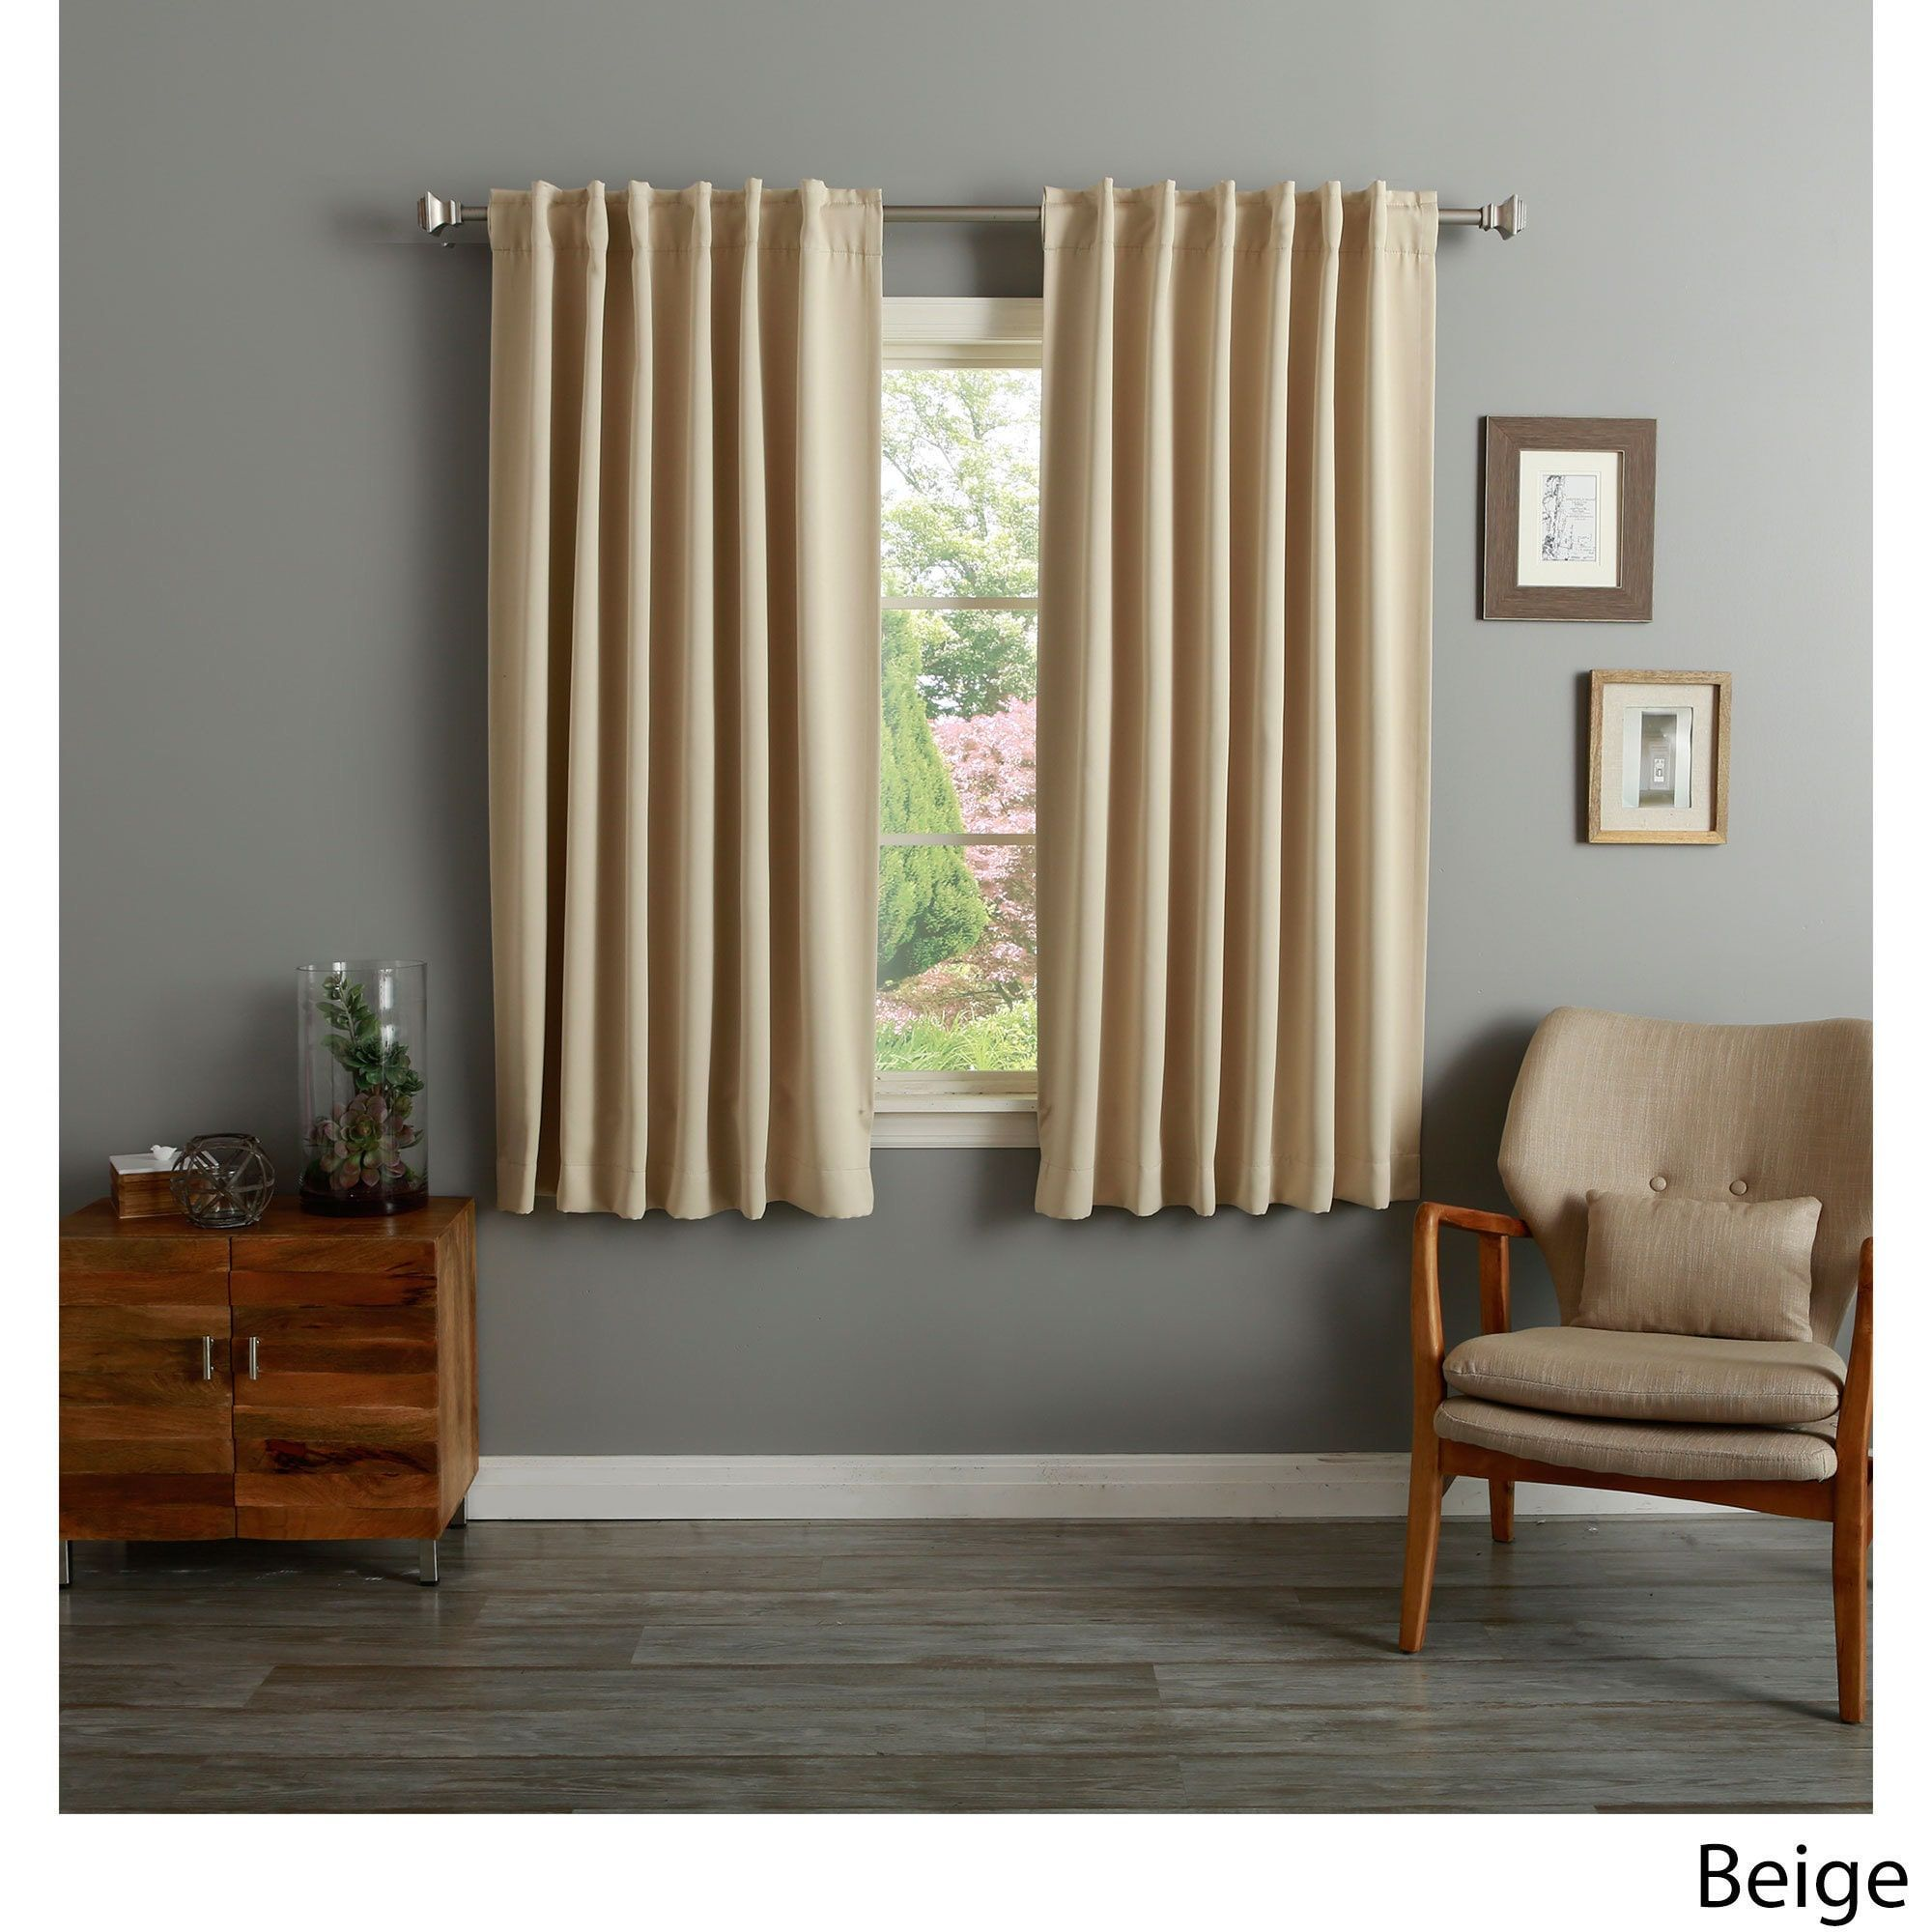 Aurora Home Solid Insulated Thermal 63 Inch Blackout Curtain Panel Pair Beige